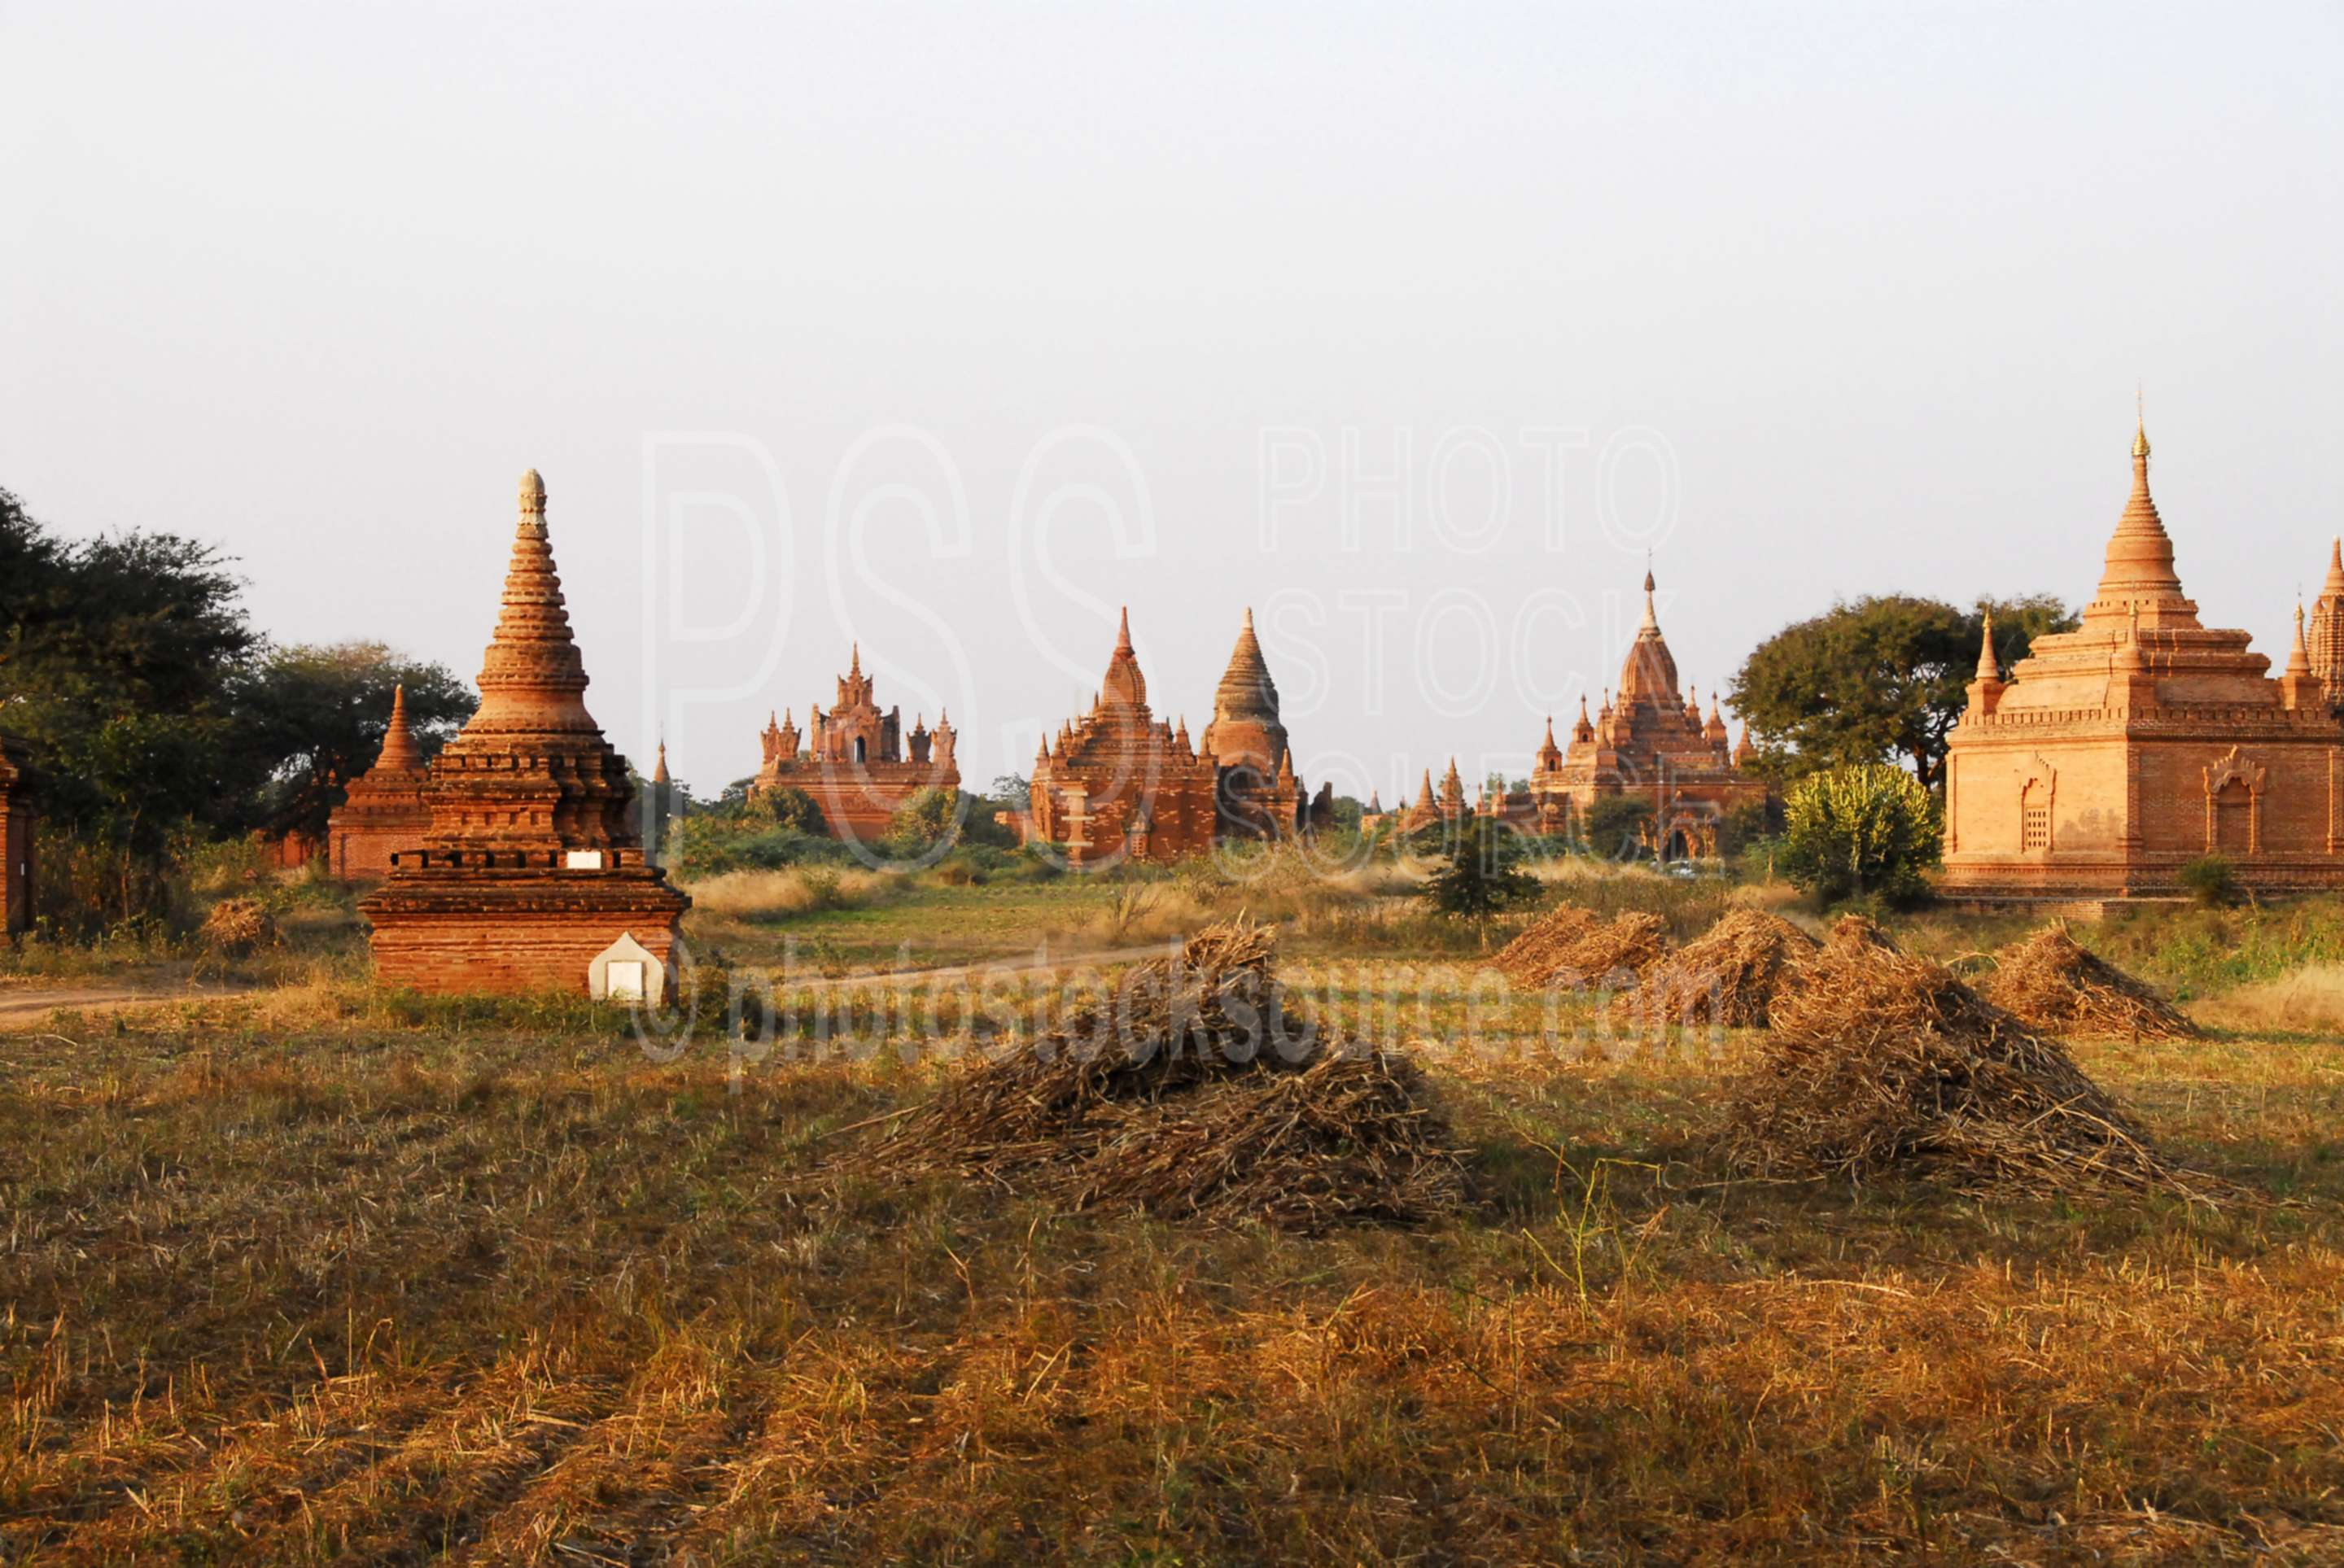 Bagan Temples near Sunset,myanmar,paya,temple,religious,buddhism,religion,stupas,pagoda,pagodas,sunset,afternoon